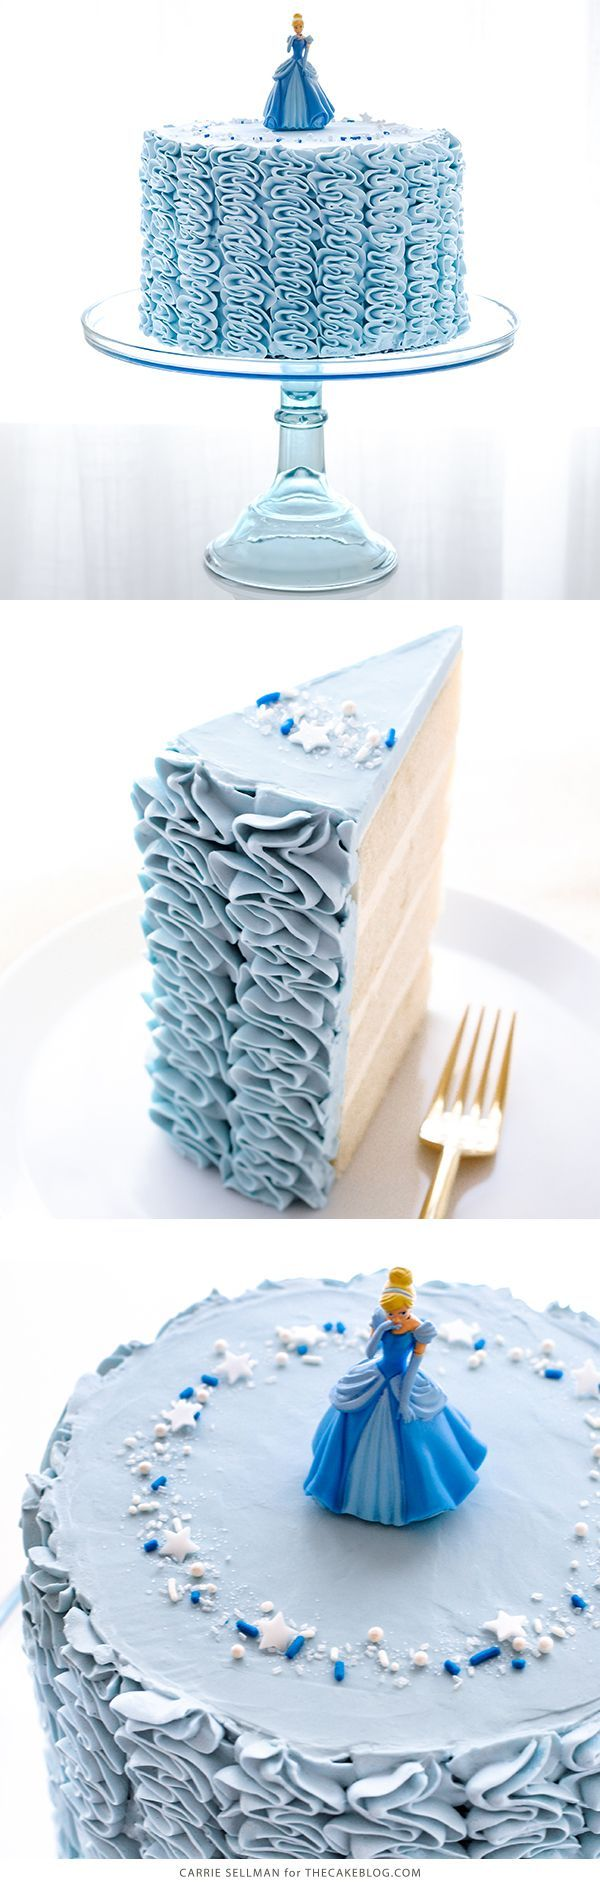 Cinderella Cake - how to make a Cinderella birthday cake with fairytale ruffles | Carrie Sellman for TheCakeBlog.com #Cakescom